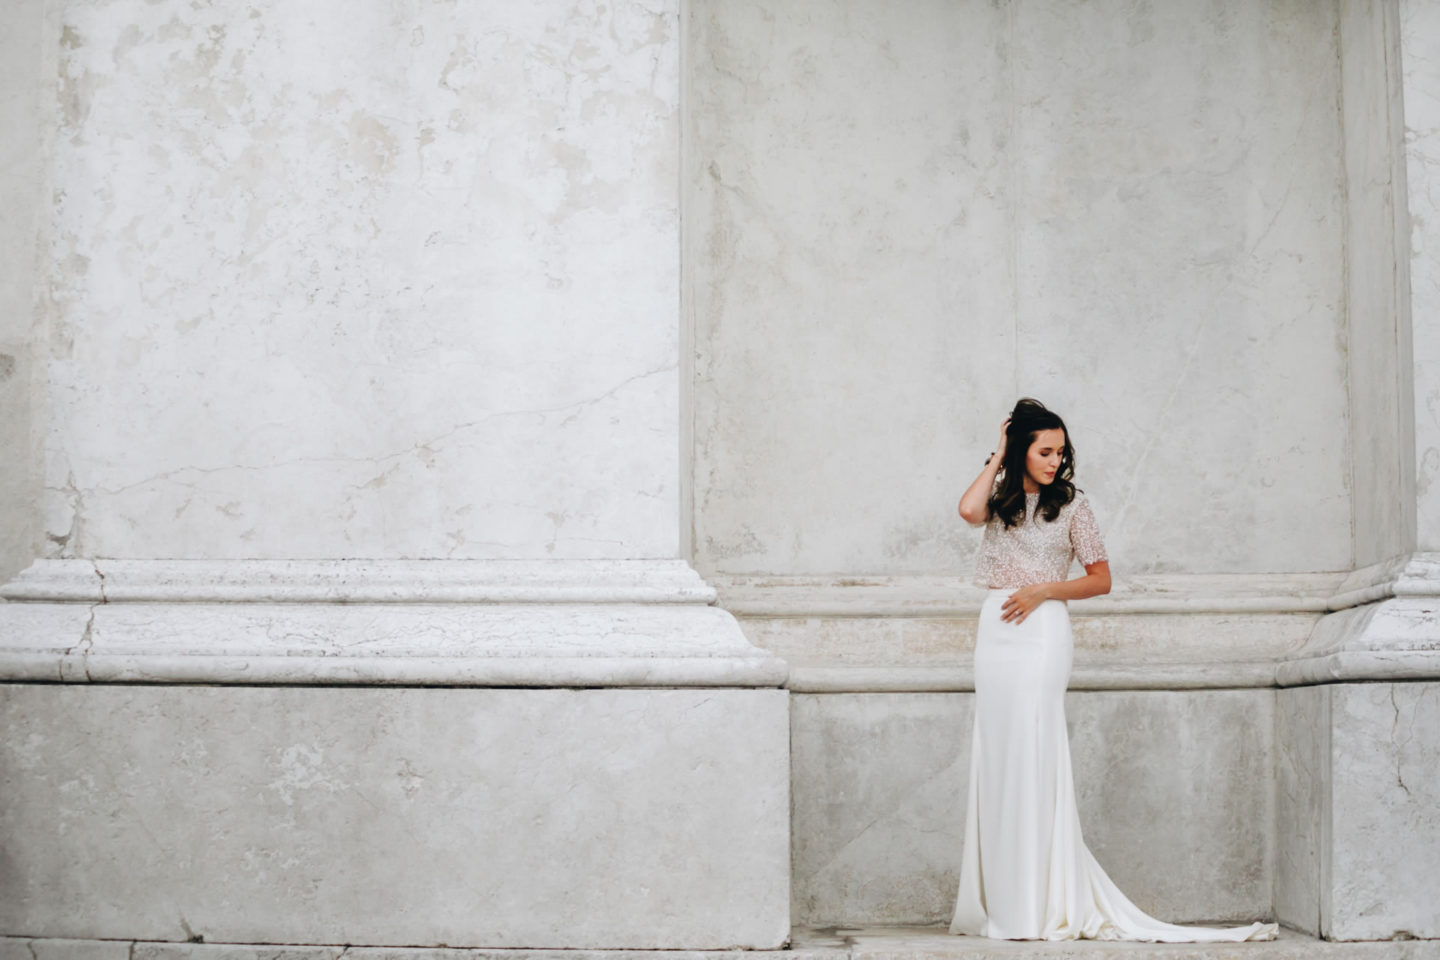 Romantic elopement in Venice :: Luxury wedding photography - 22